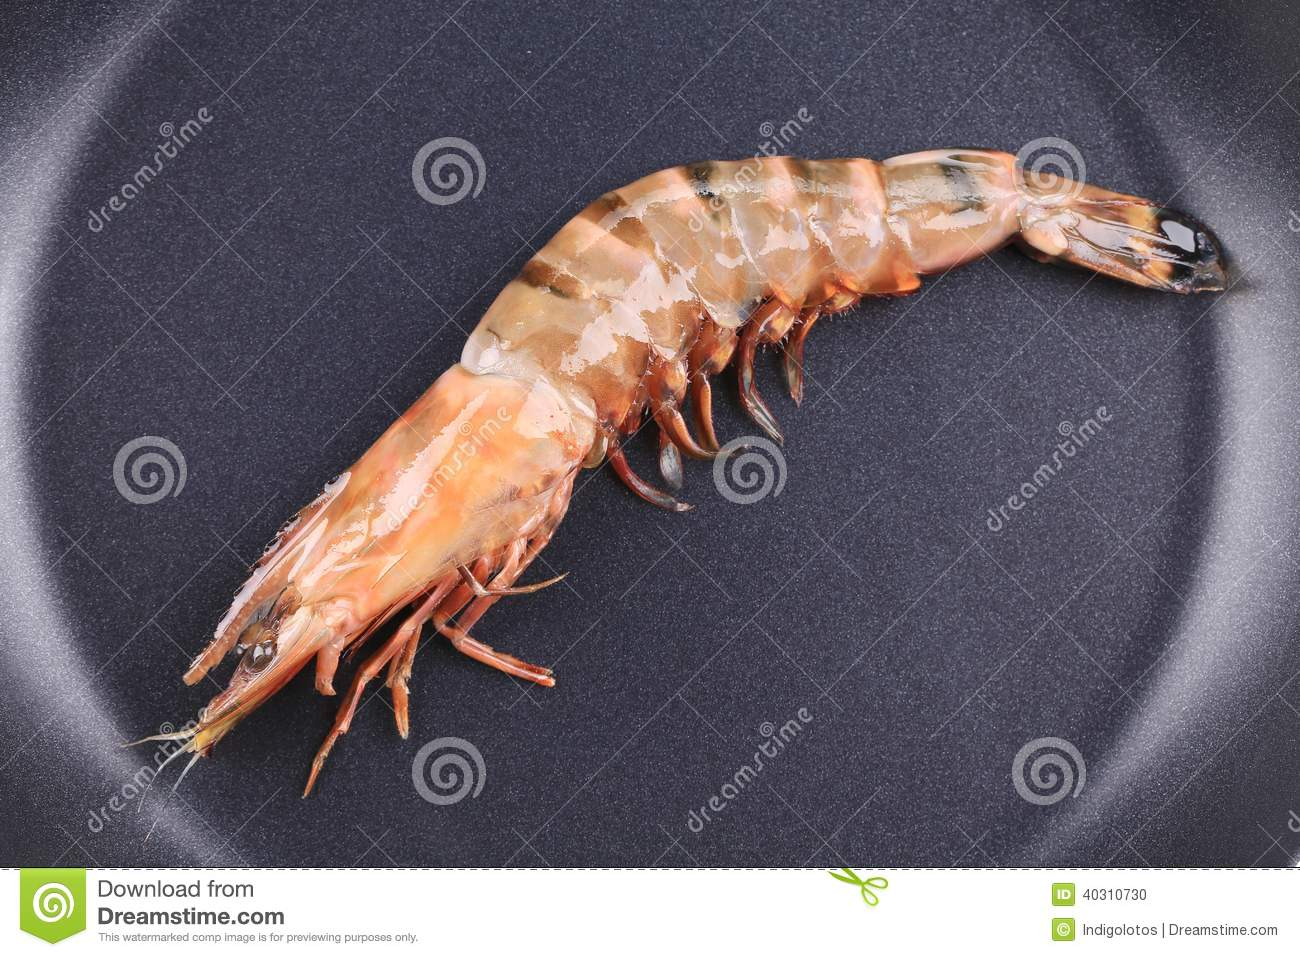 how to cook shrimp in a frying pan